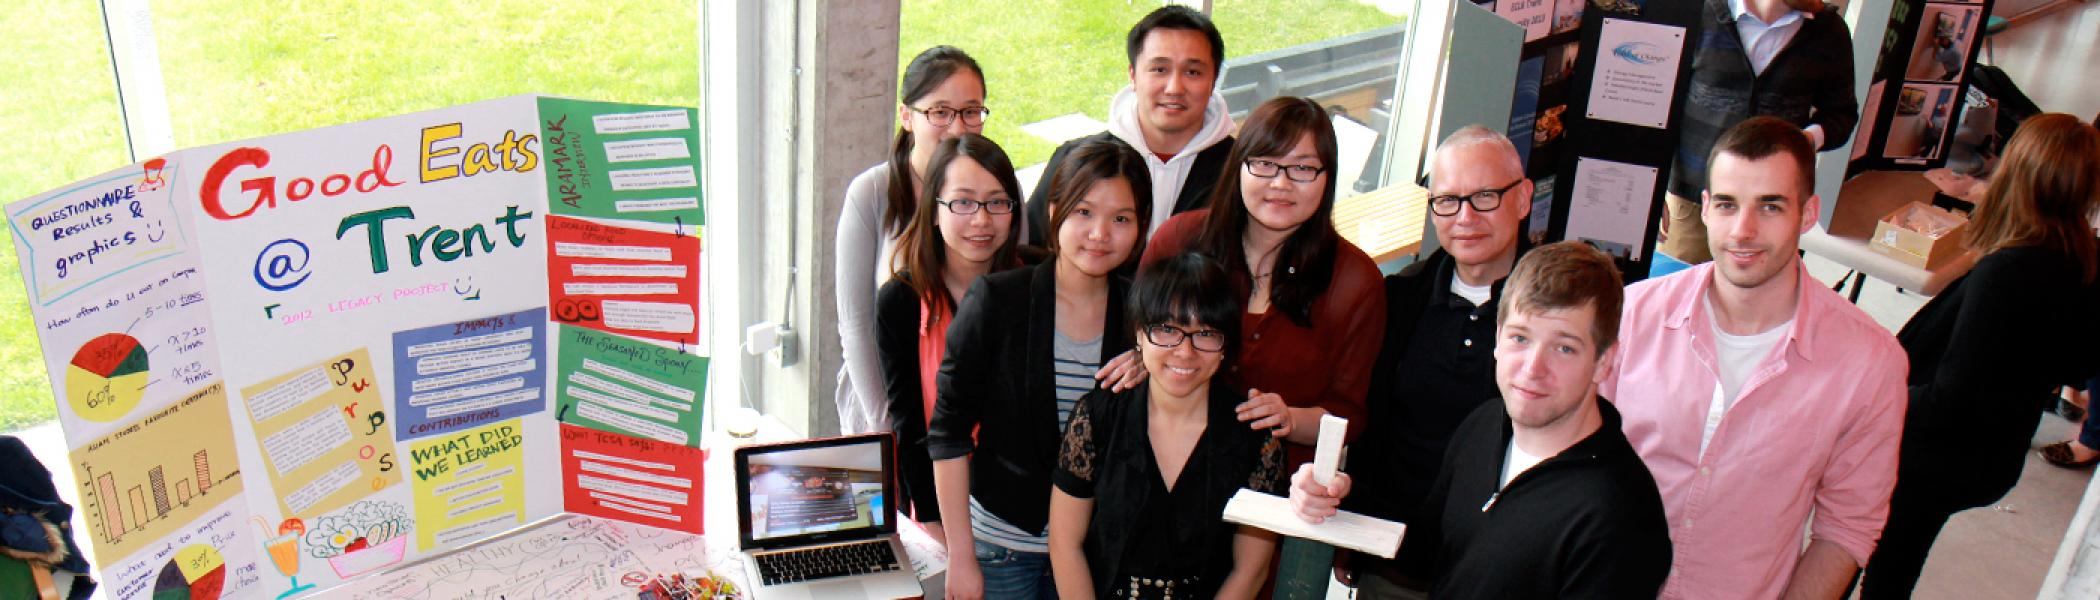 A group of students standing together looking up at the camera standing beside a table with posters and a computer on it